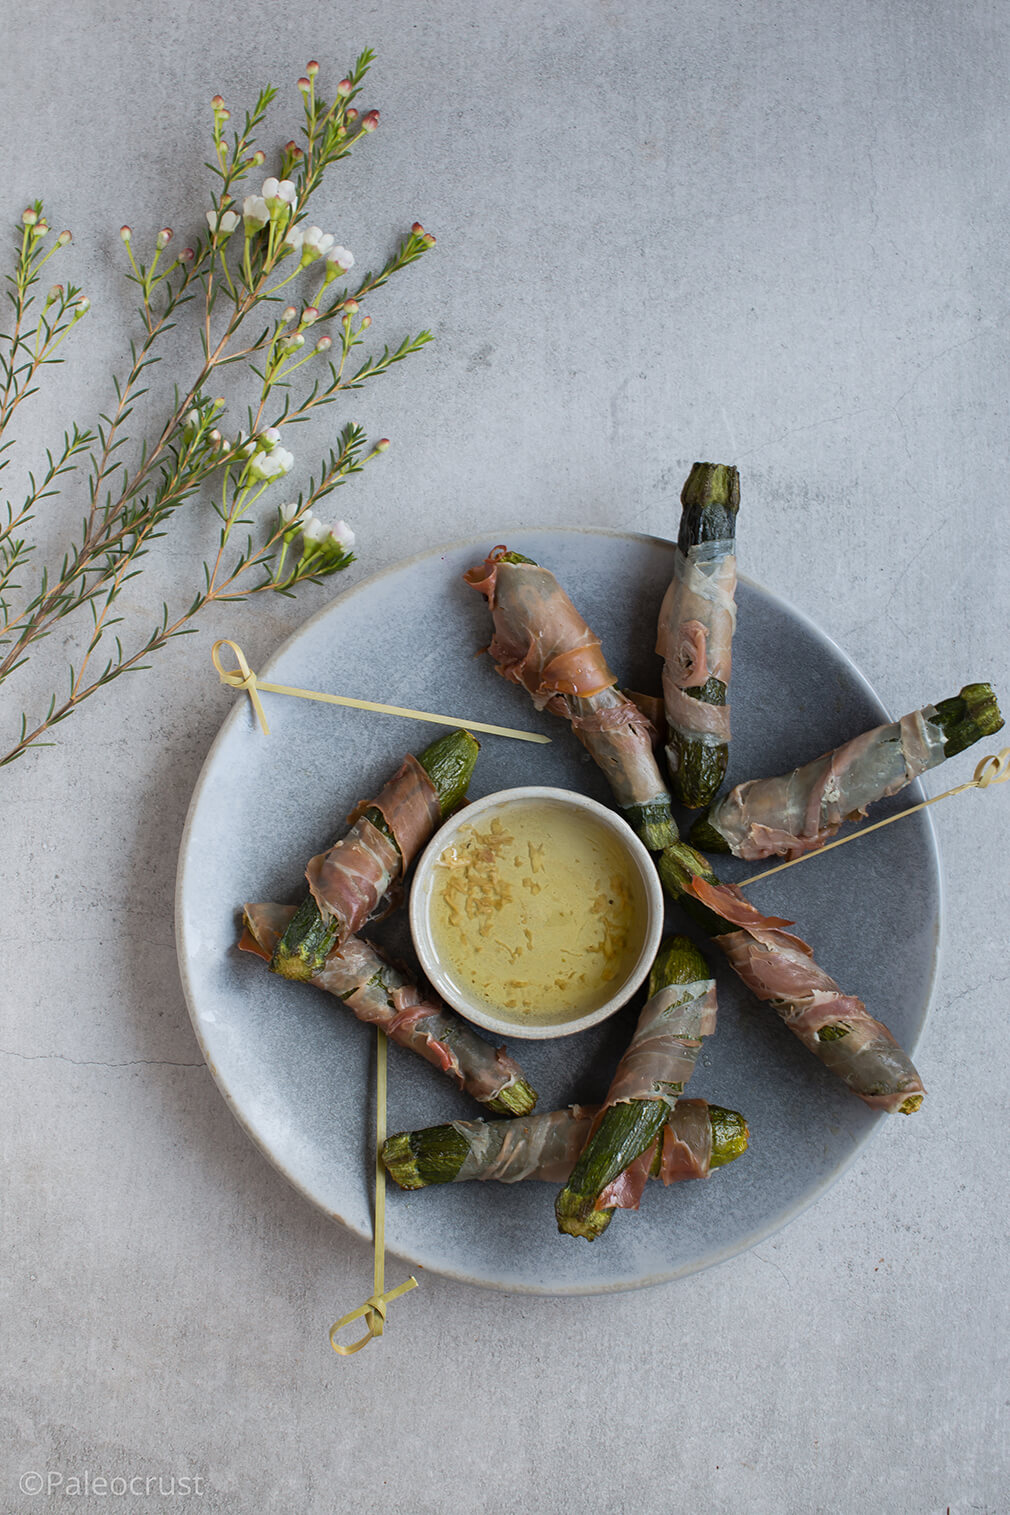 Courgettes in blankets, courgettes, pigs in blankets, Christmas food, food photography, Paleo Crust, free from food, finger food, healthy food